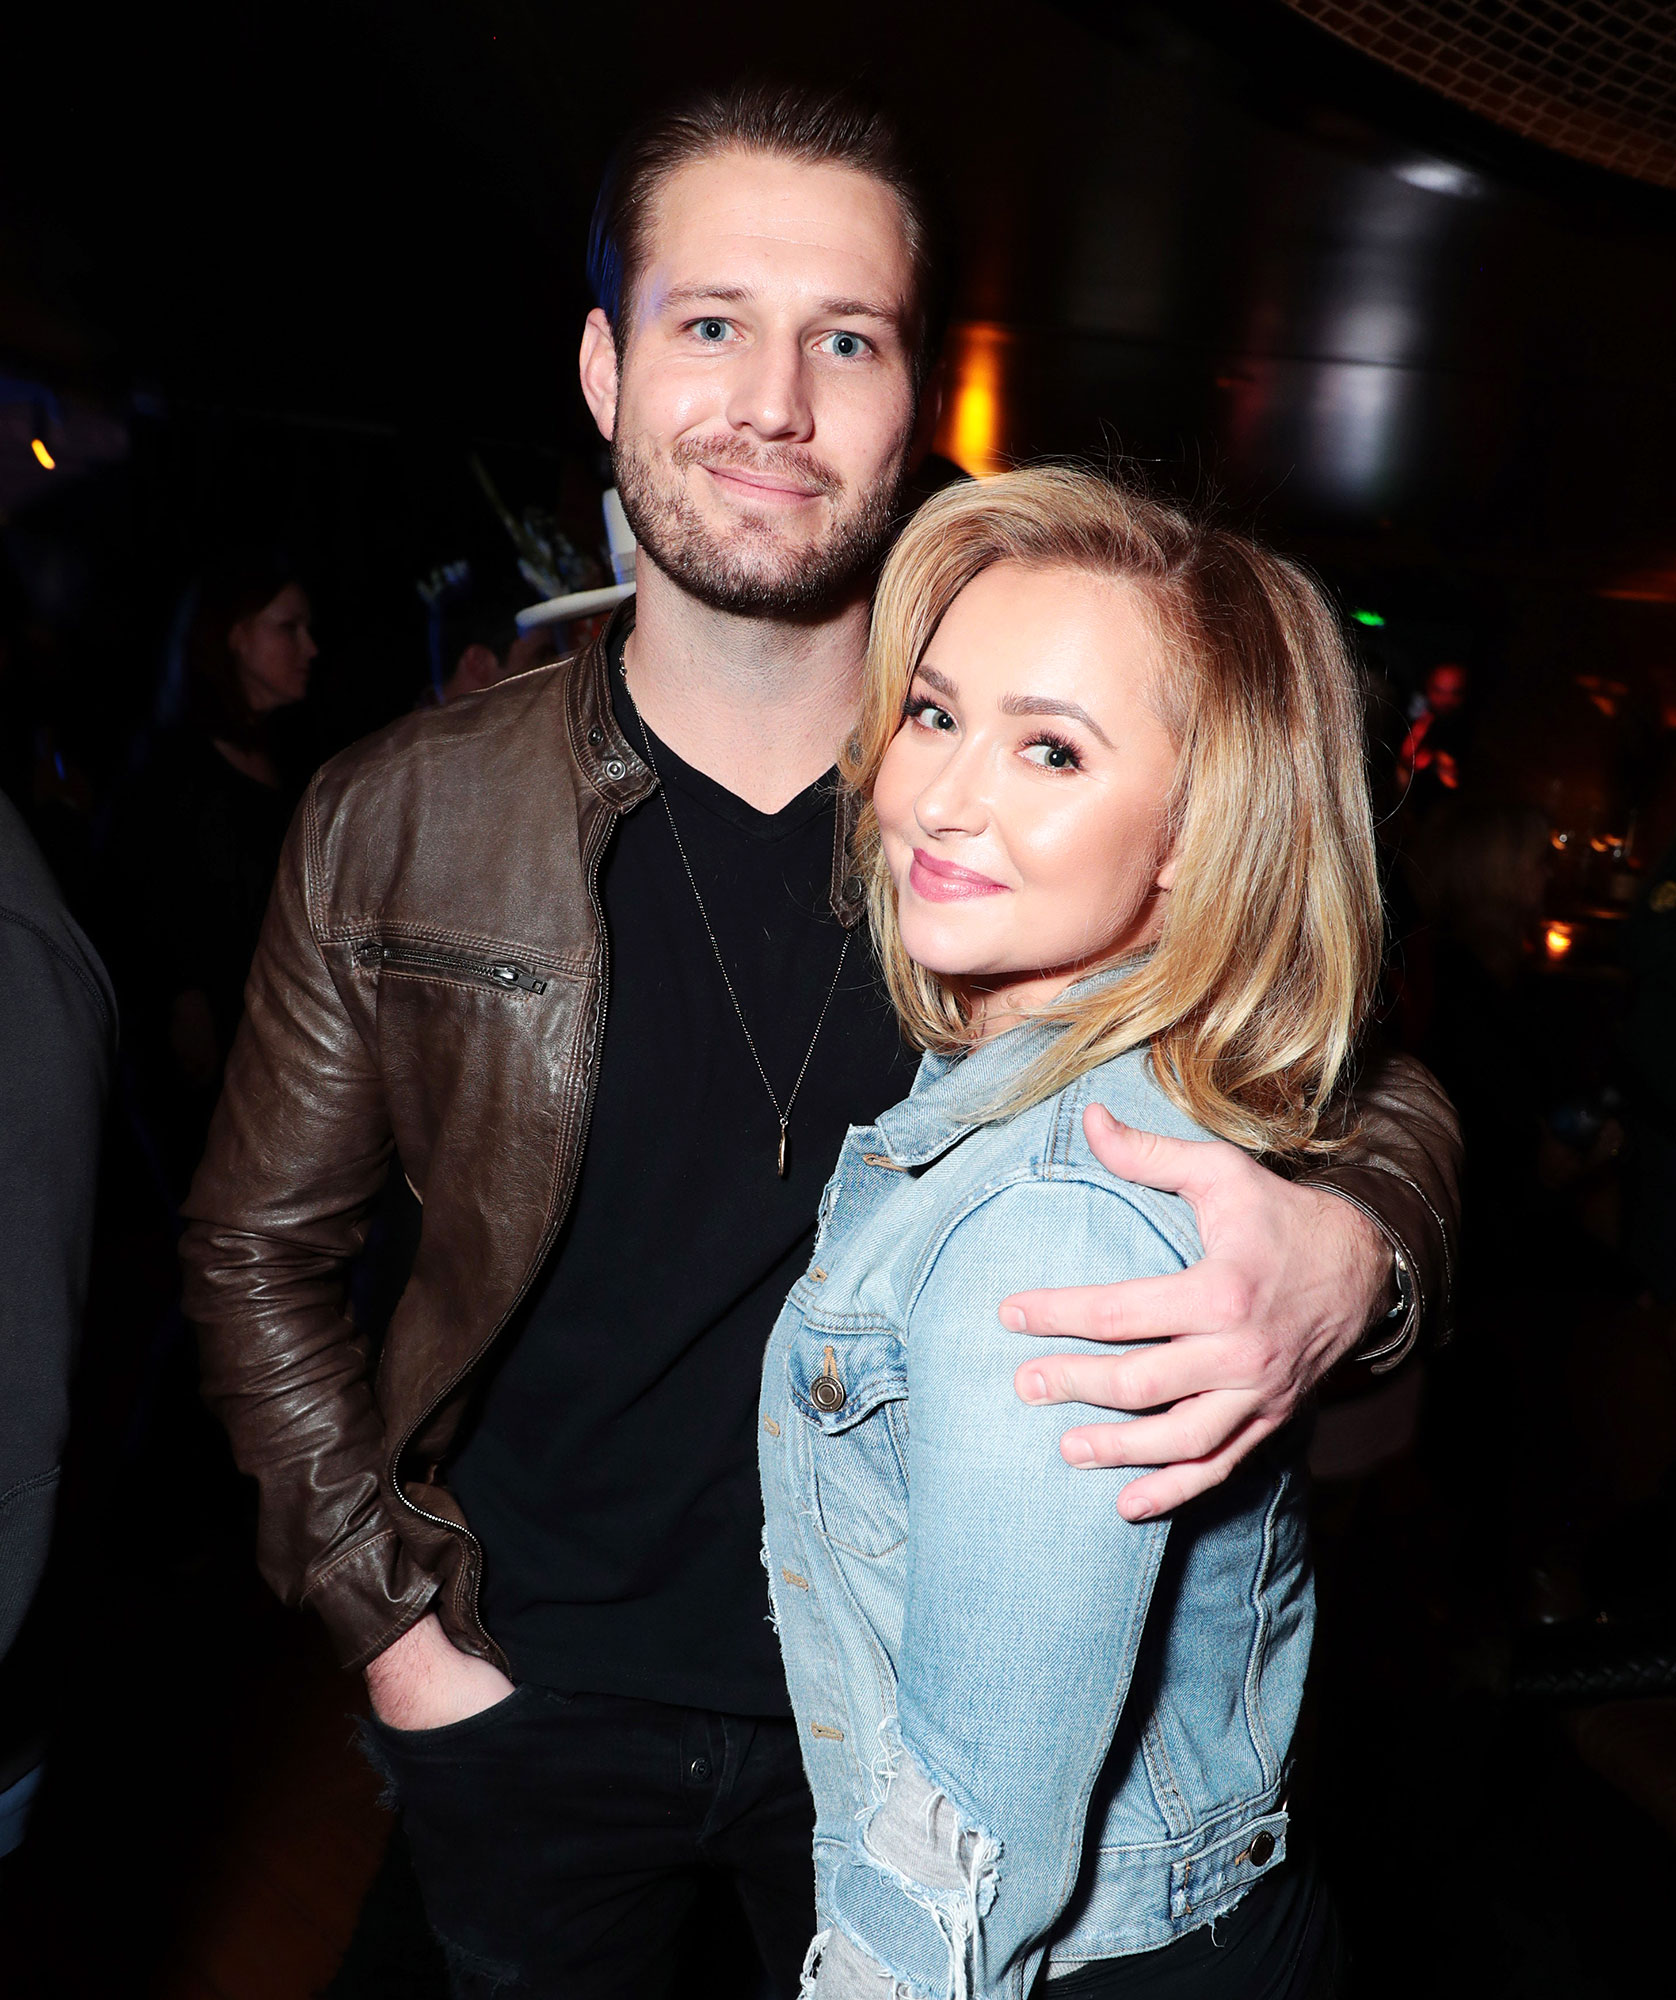 Hayden Panettieres Boyfriend Brian Hickerson Pleads Not Guilty to Domestic Battery